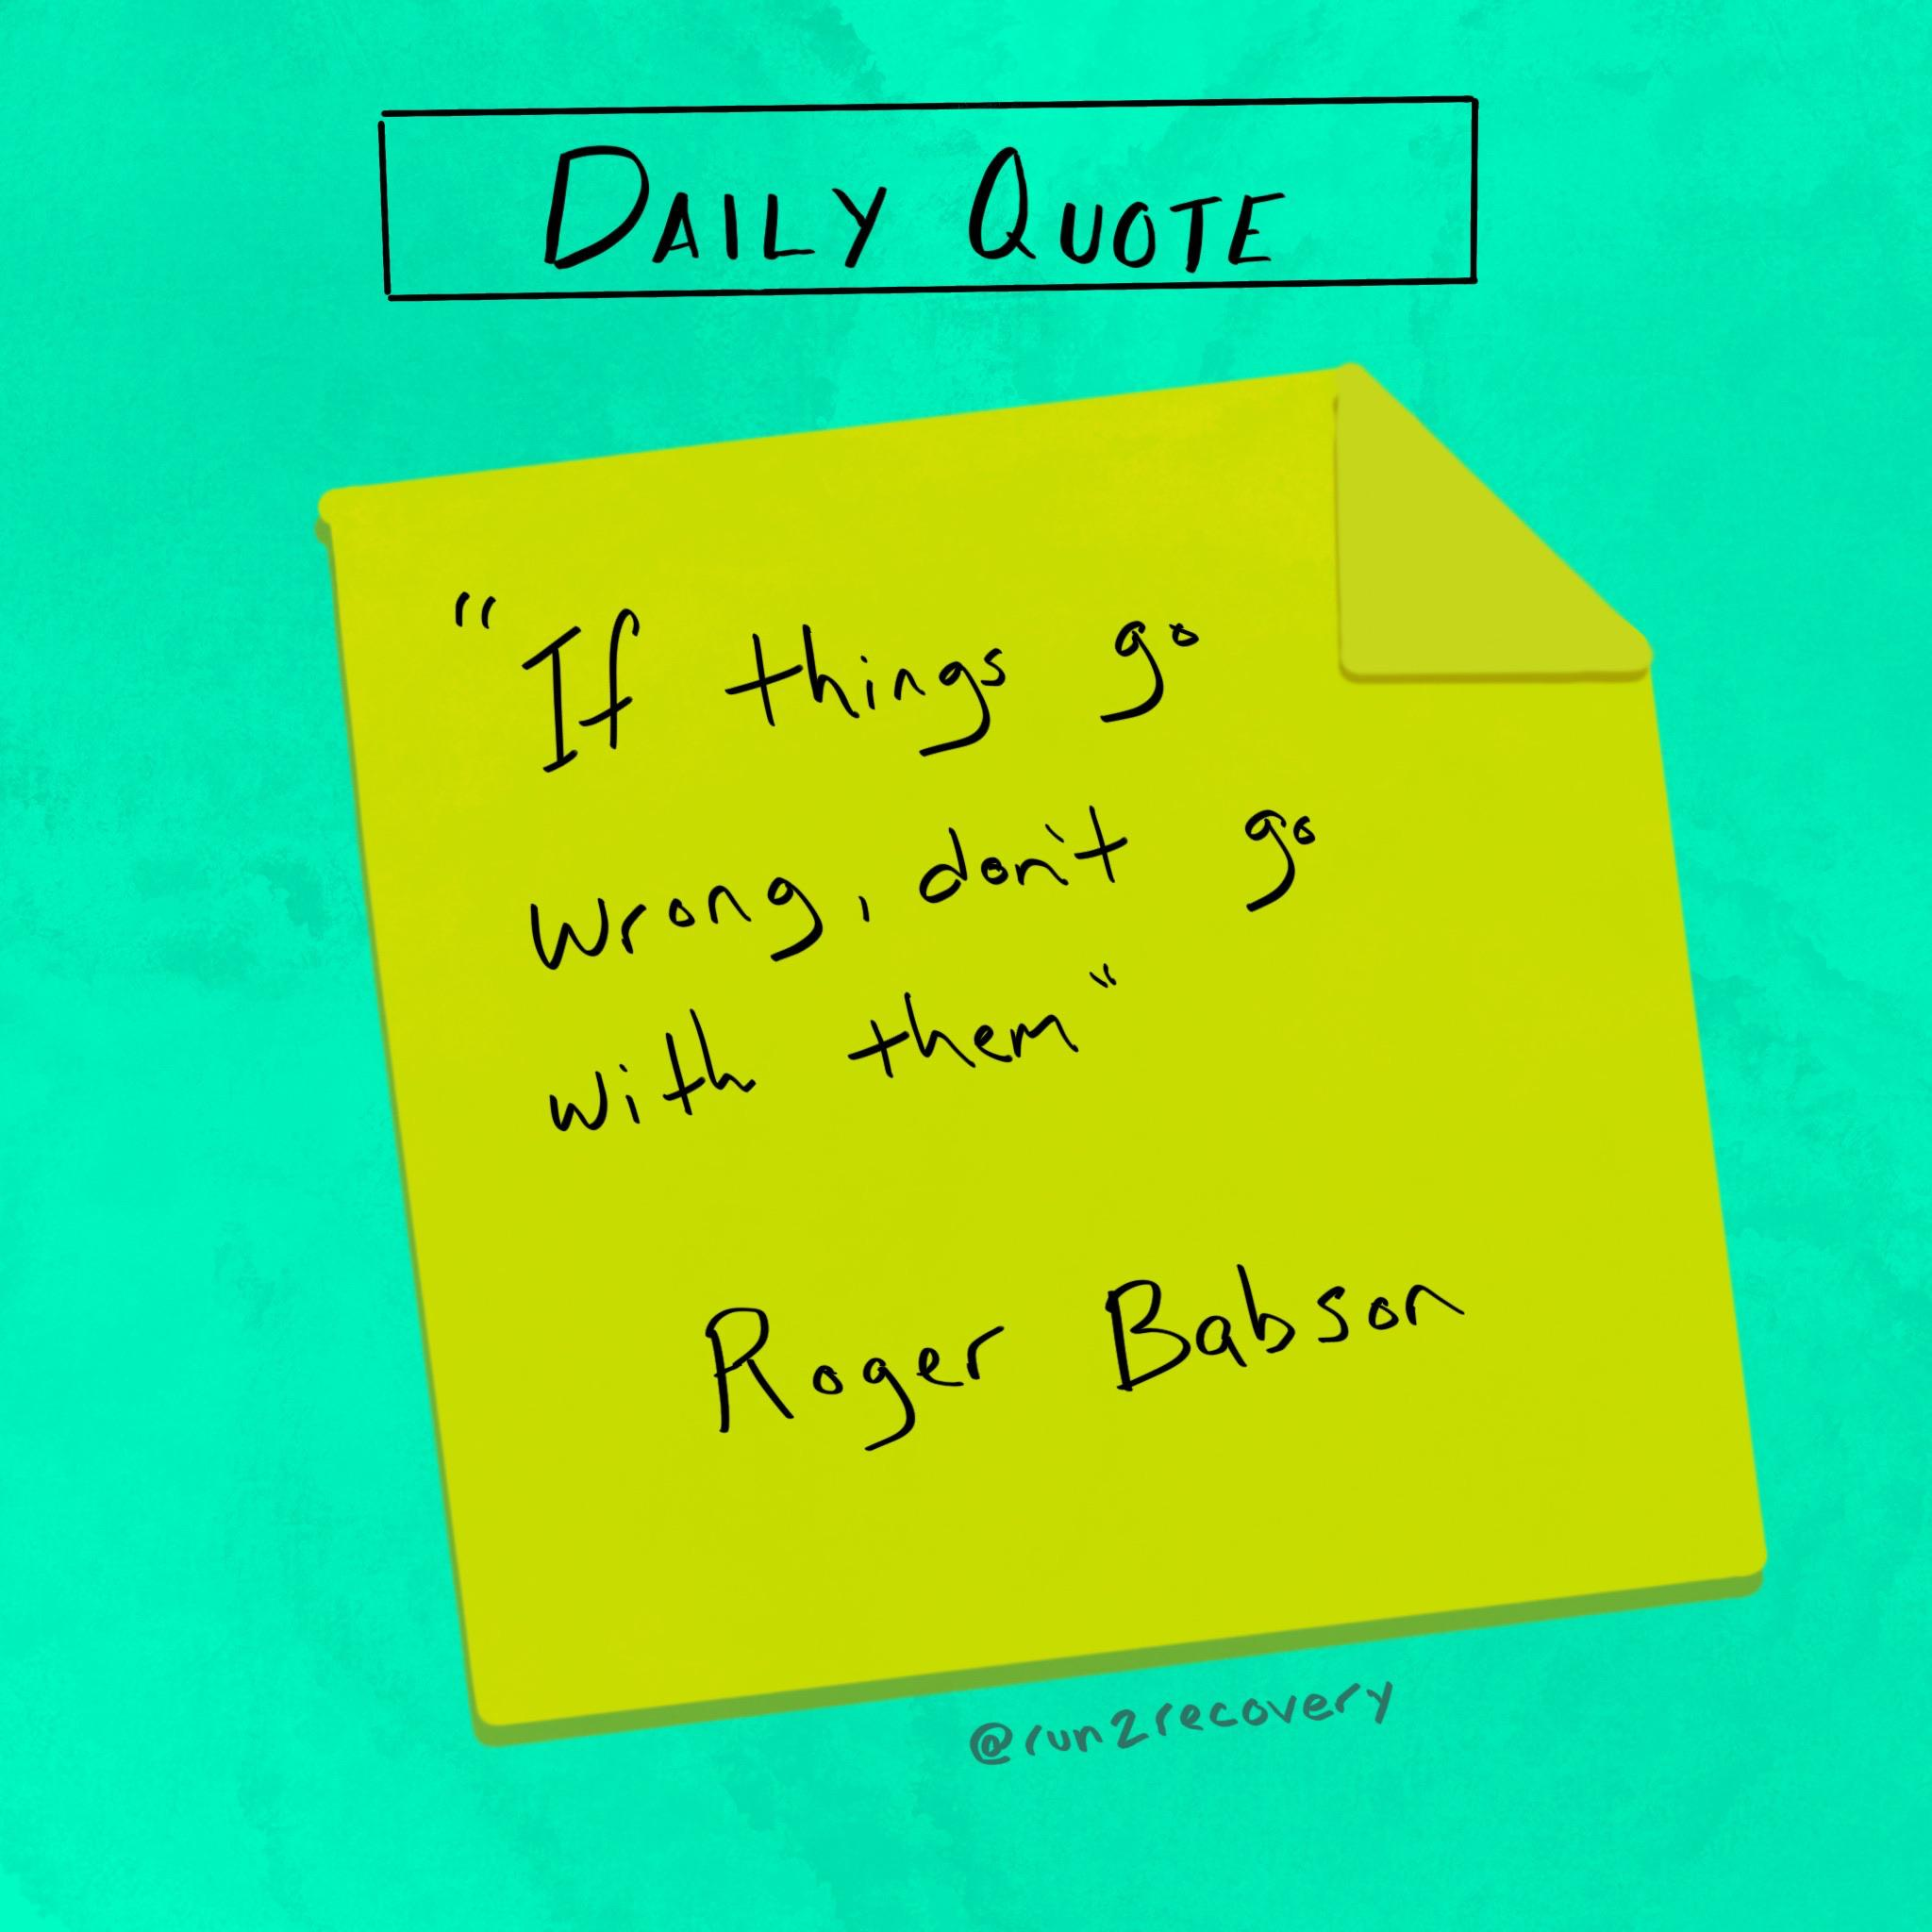 """If things go wrong, don't go with them."" Roger Babson [Image]"